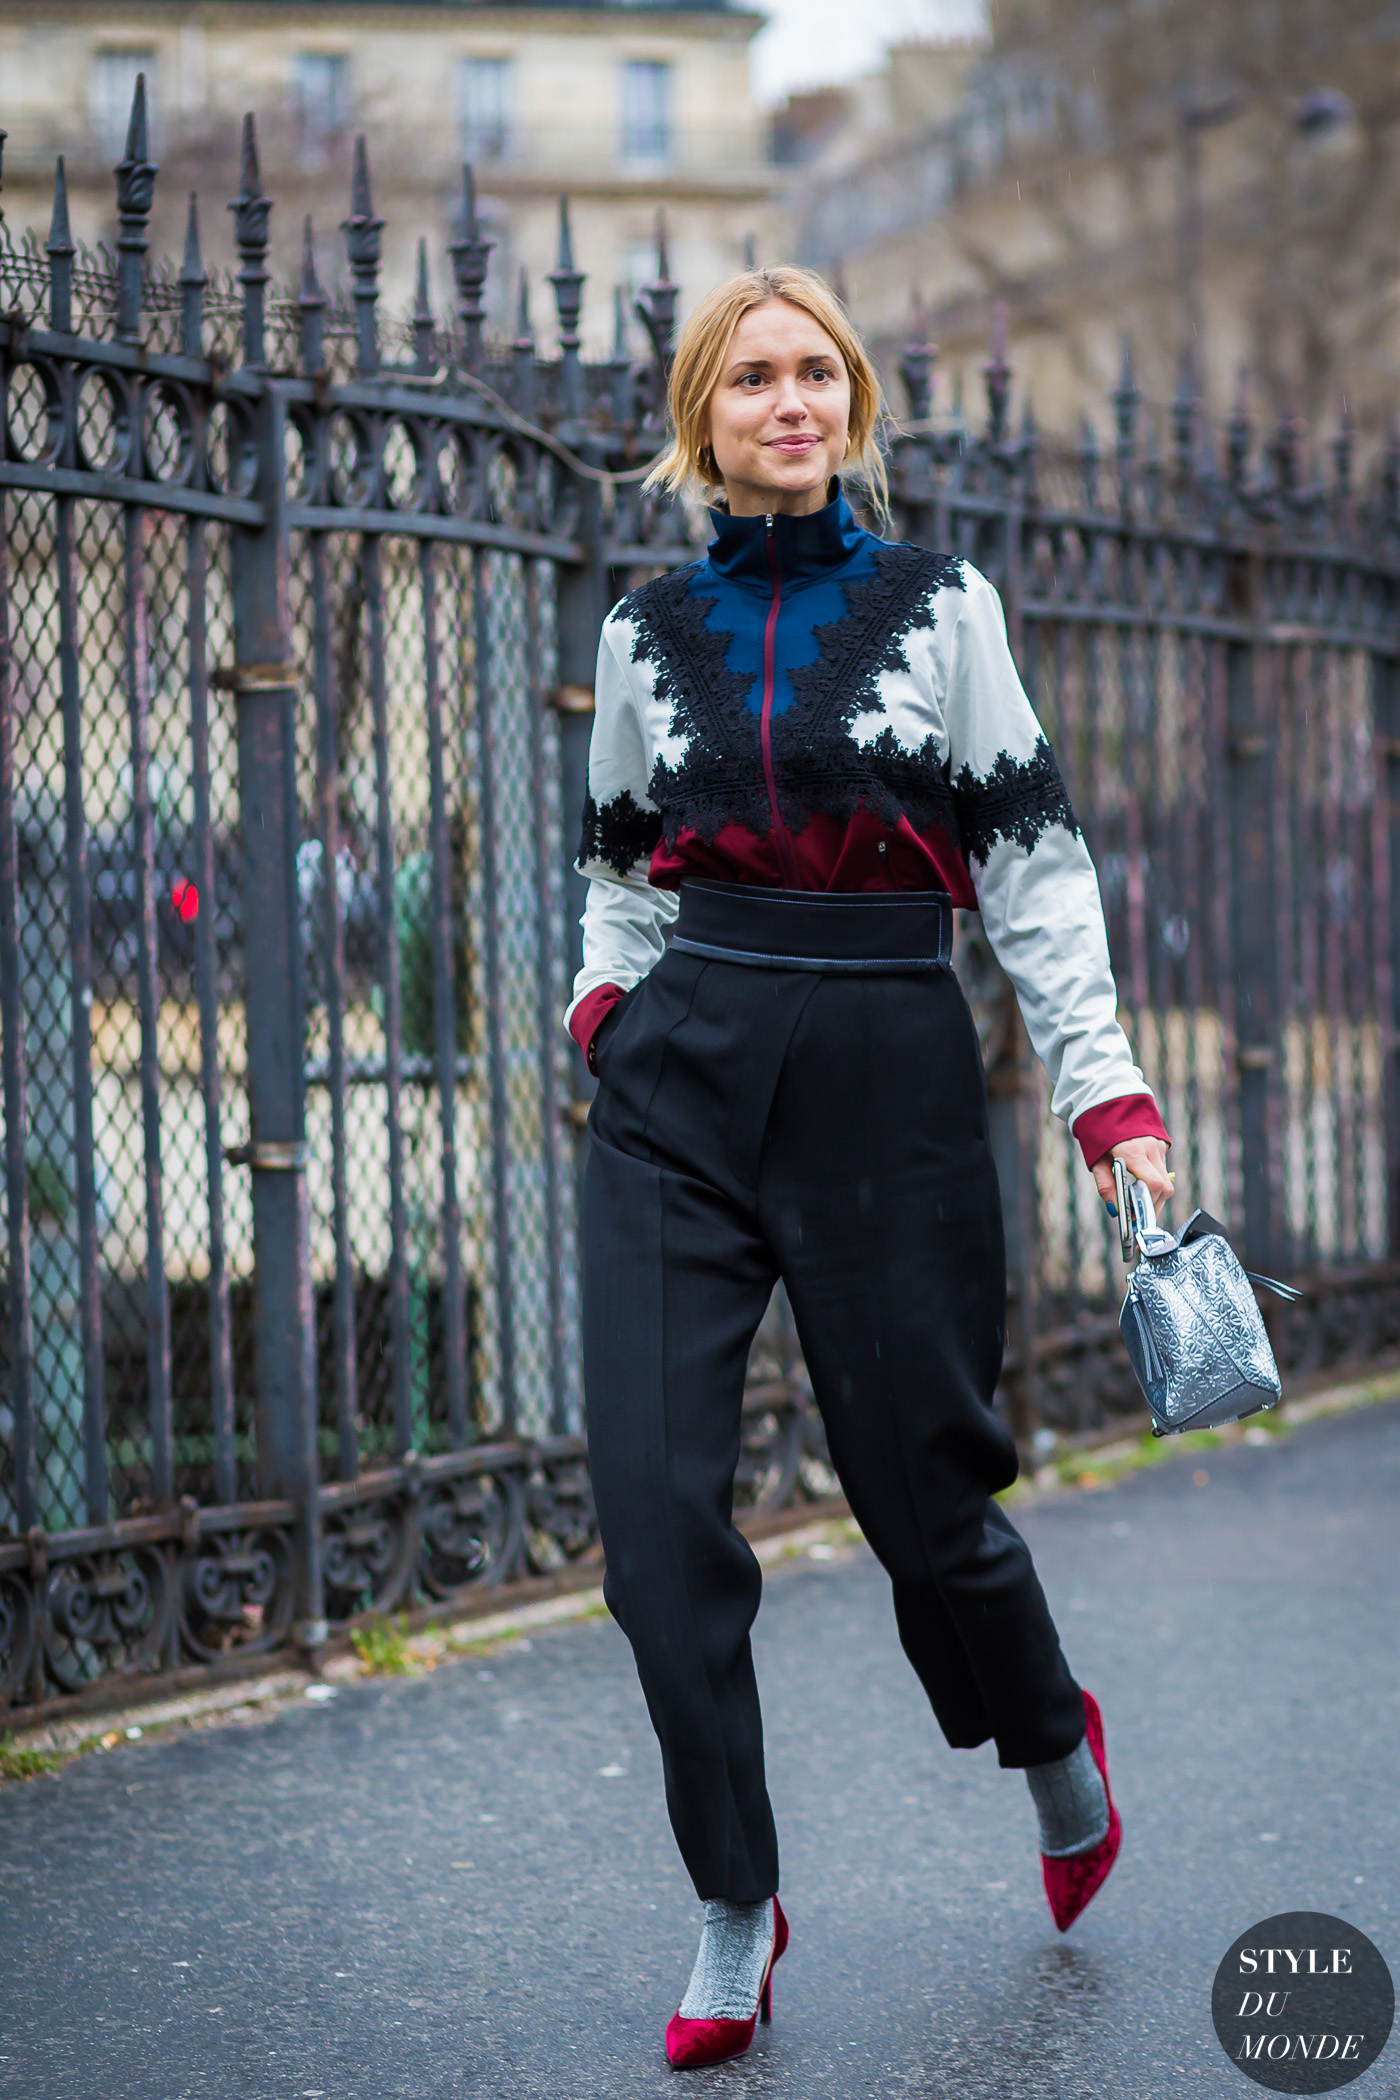 Pernille Teisbaek Street Style Street Fashion Streetsnaps by STYLEDUMONDE Street Style Fashion Photography